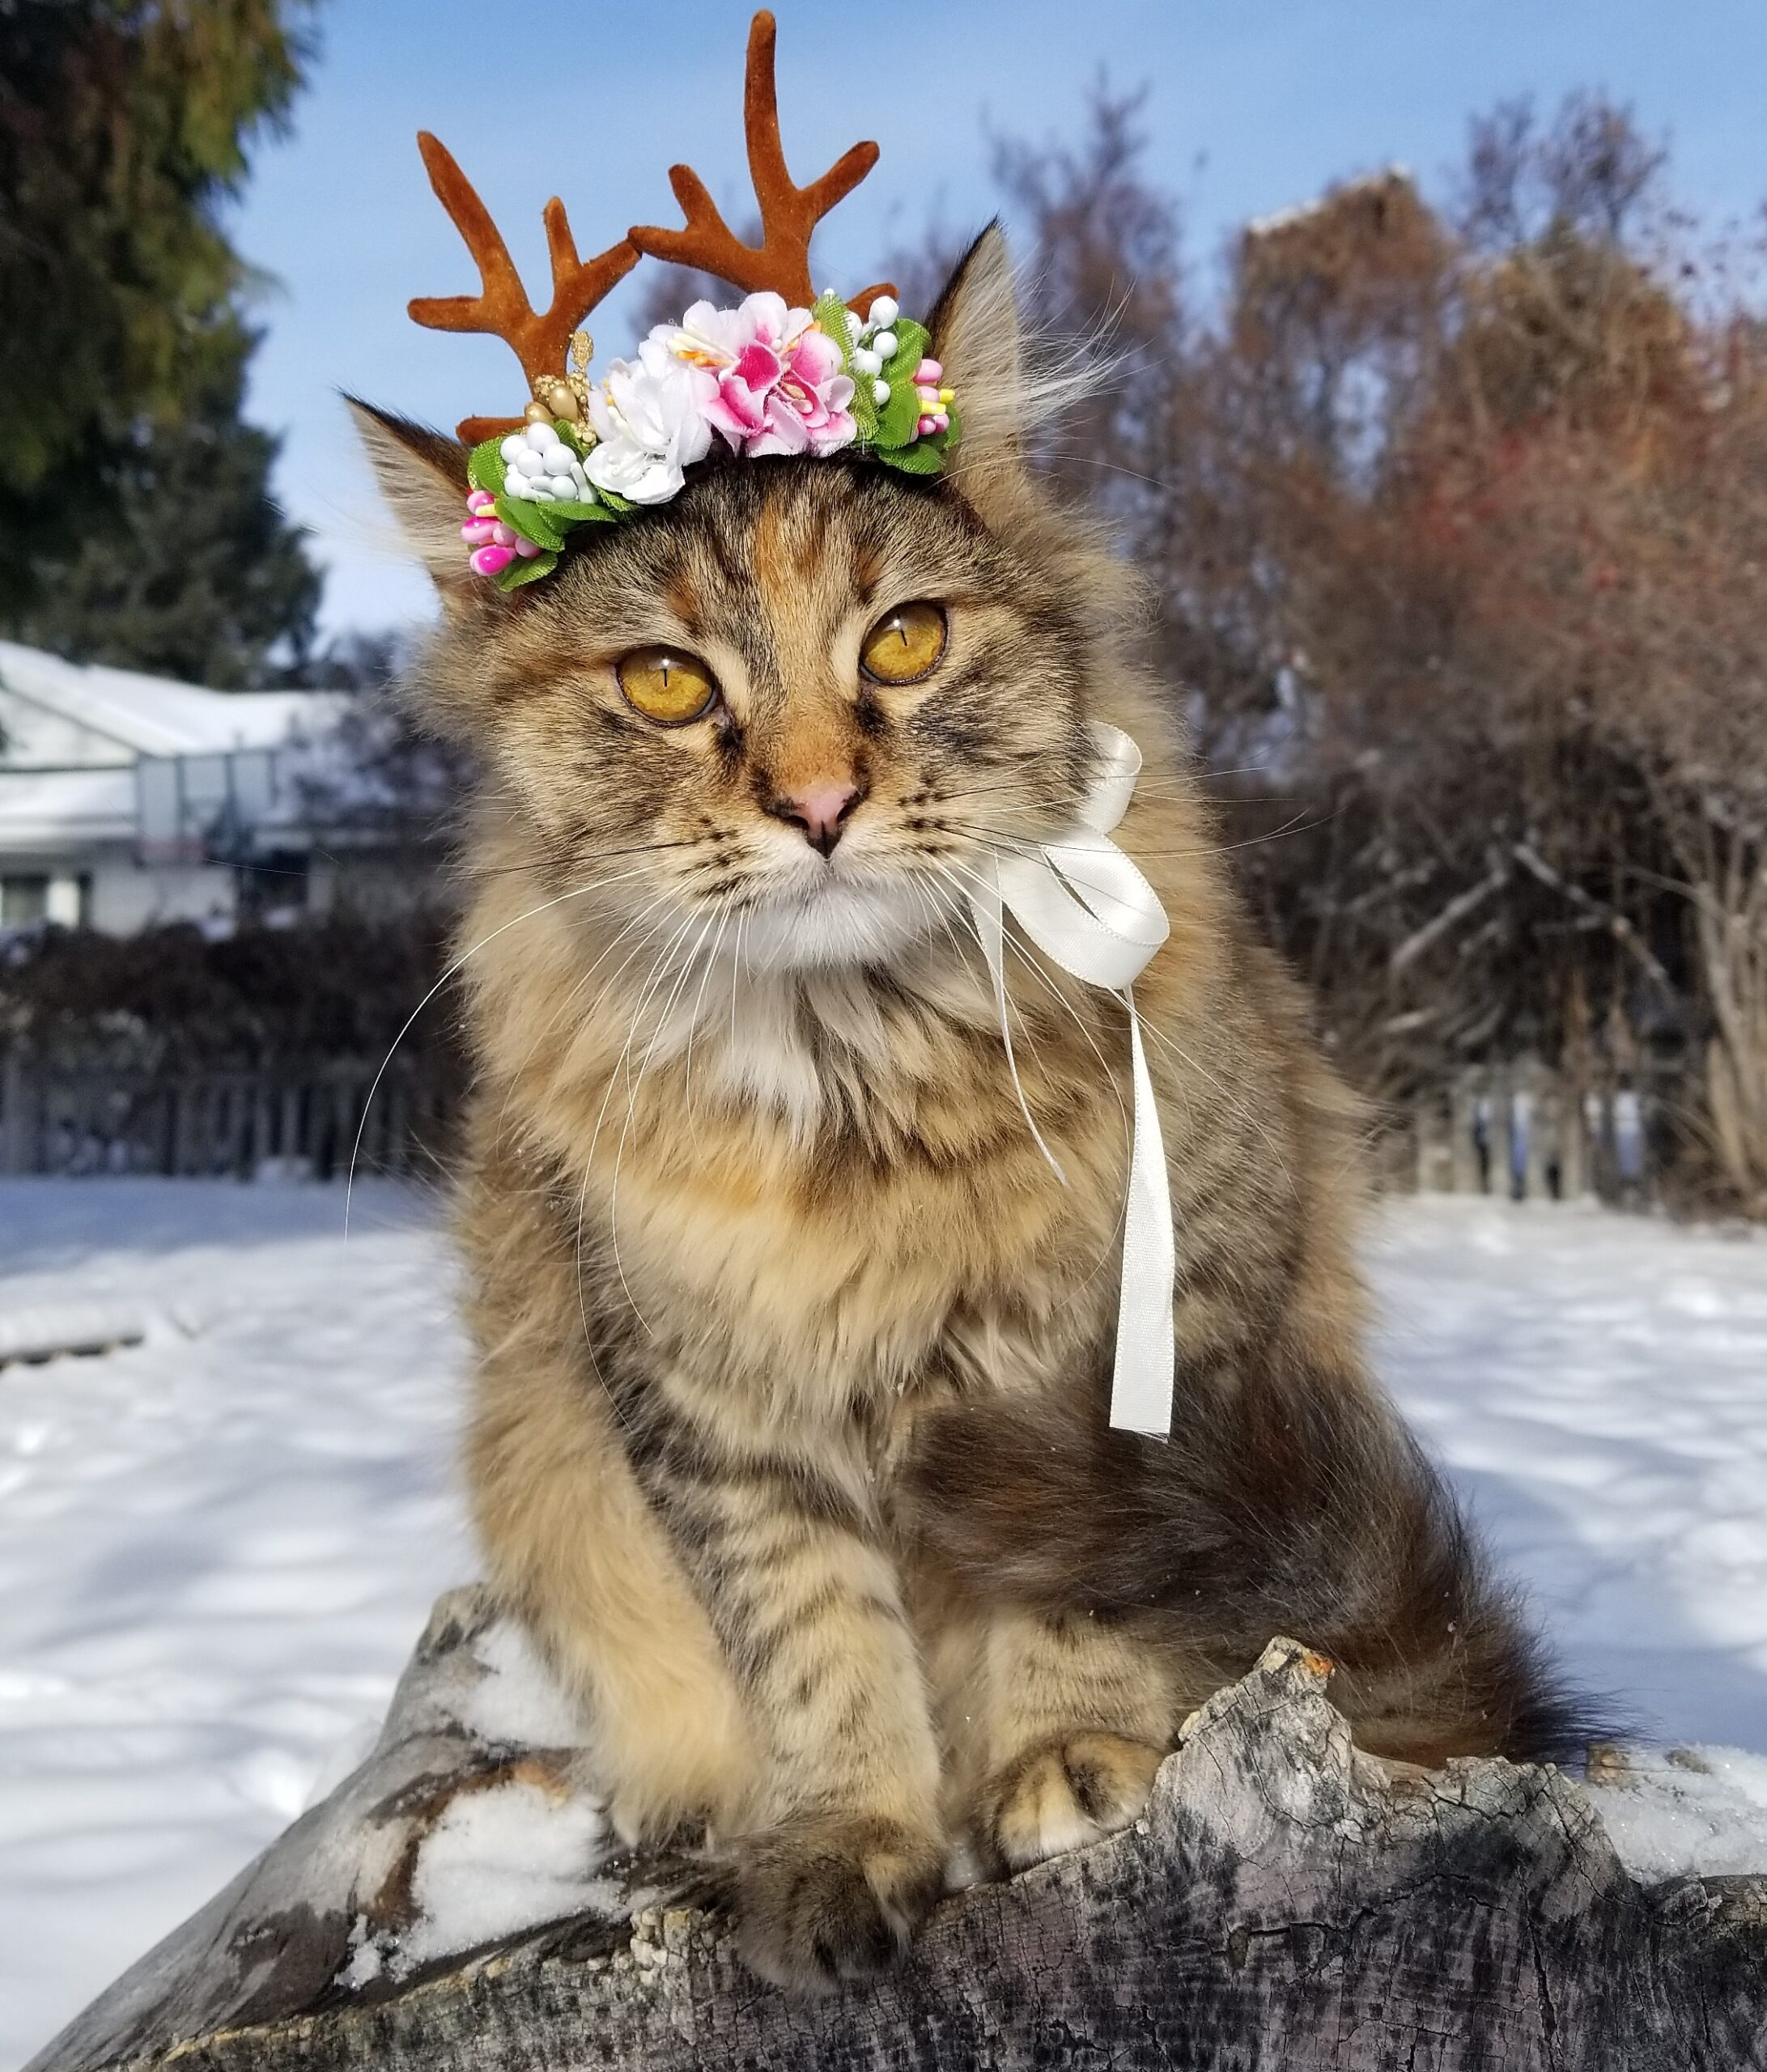 Tabby cat outdoors in snow dressed as reindeer